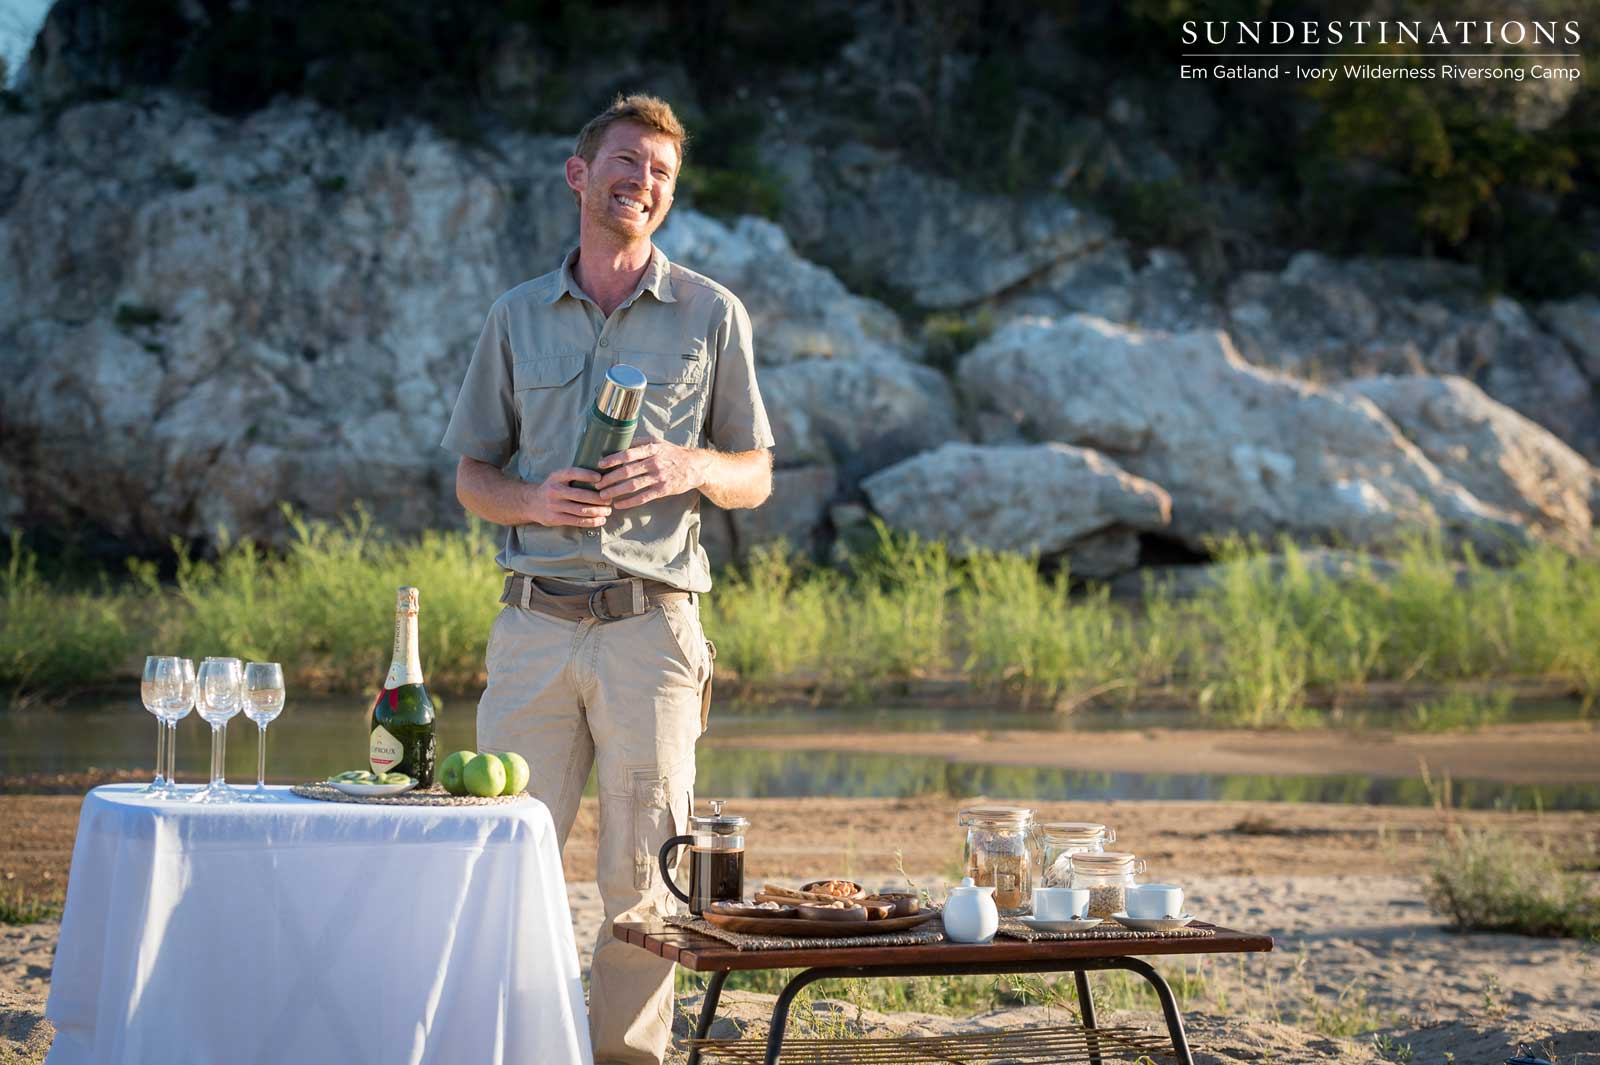 Champagne Bush Breakfast at Ivory Wilderness Riversong Camp